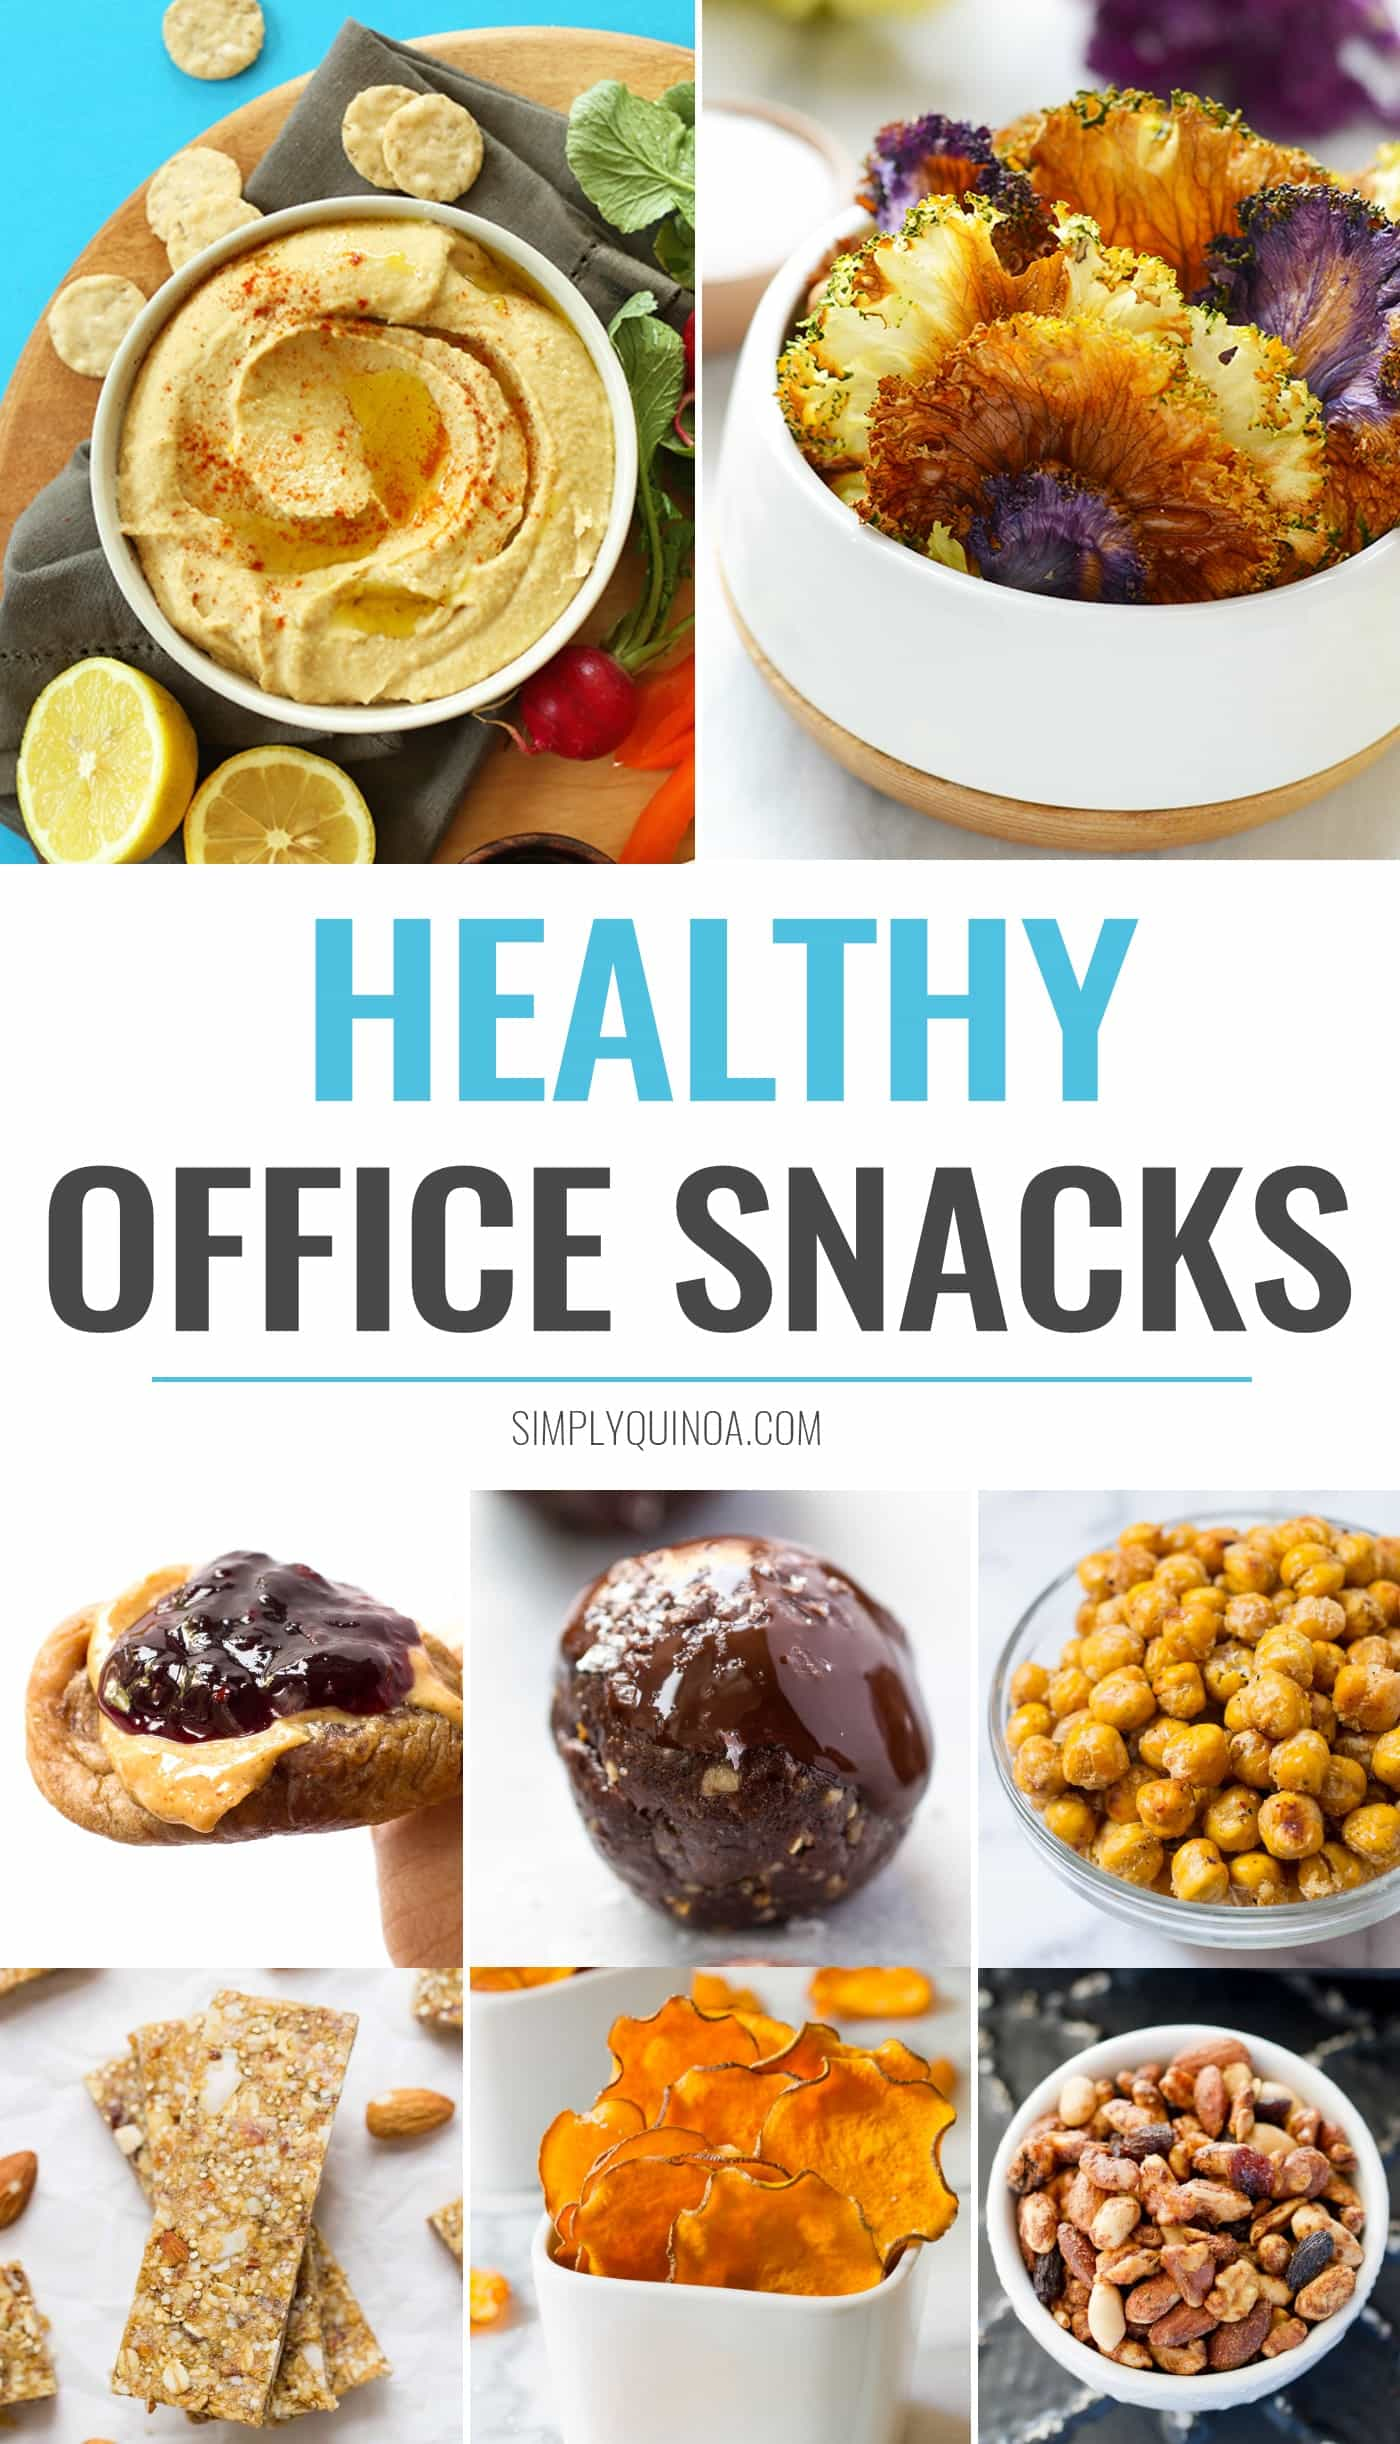 The 12 Best Healthy Office Snacks